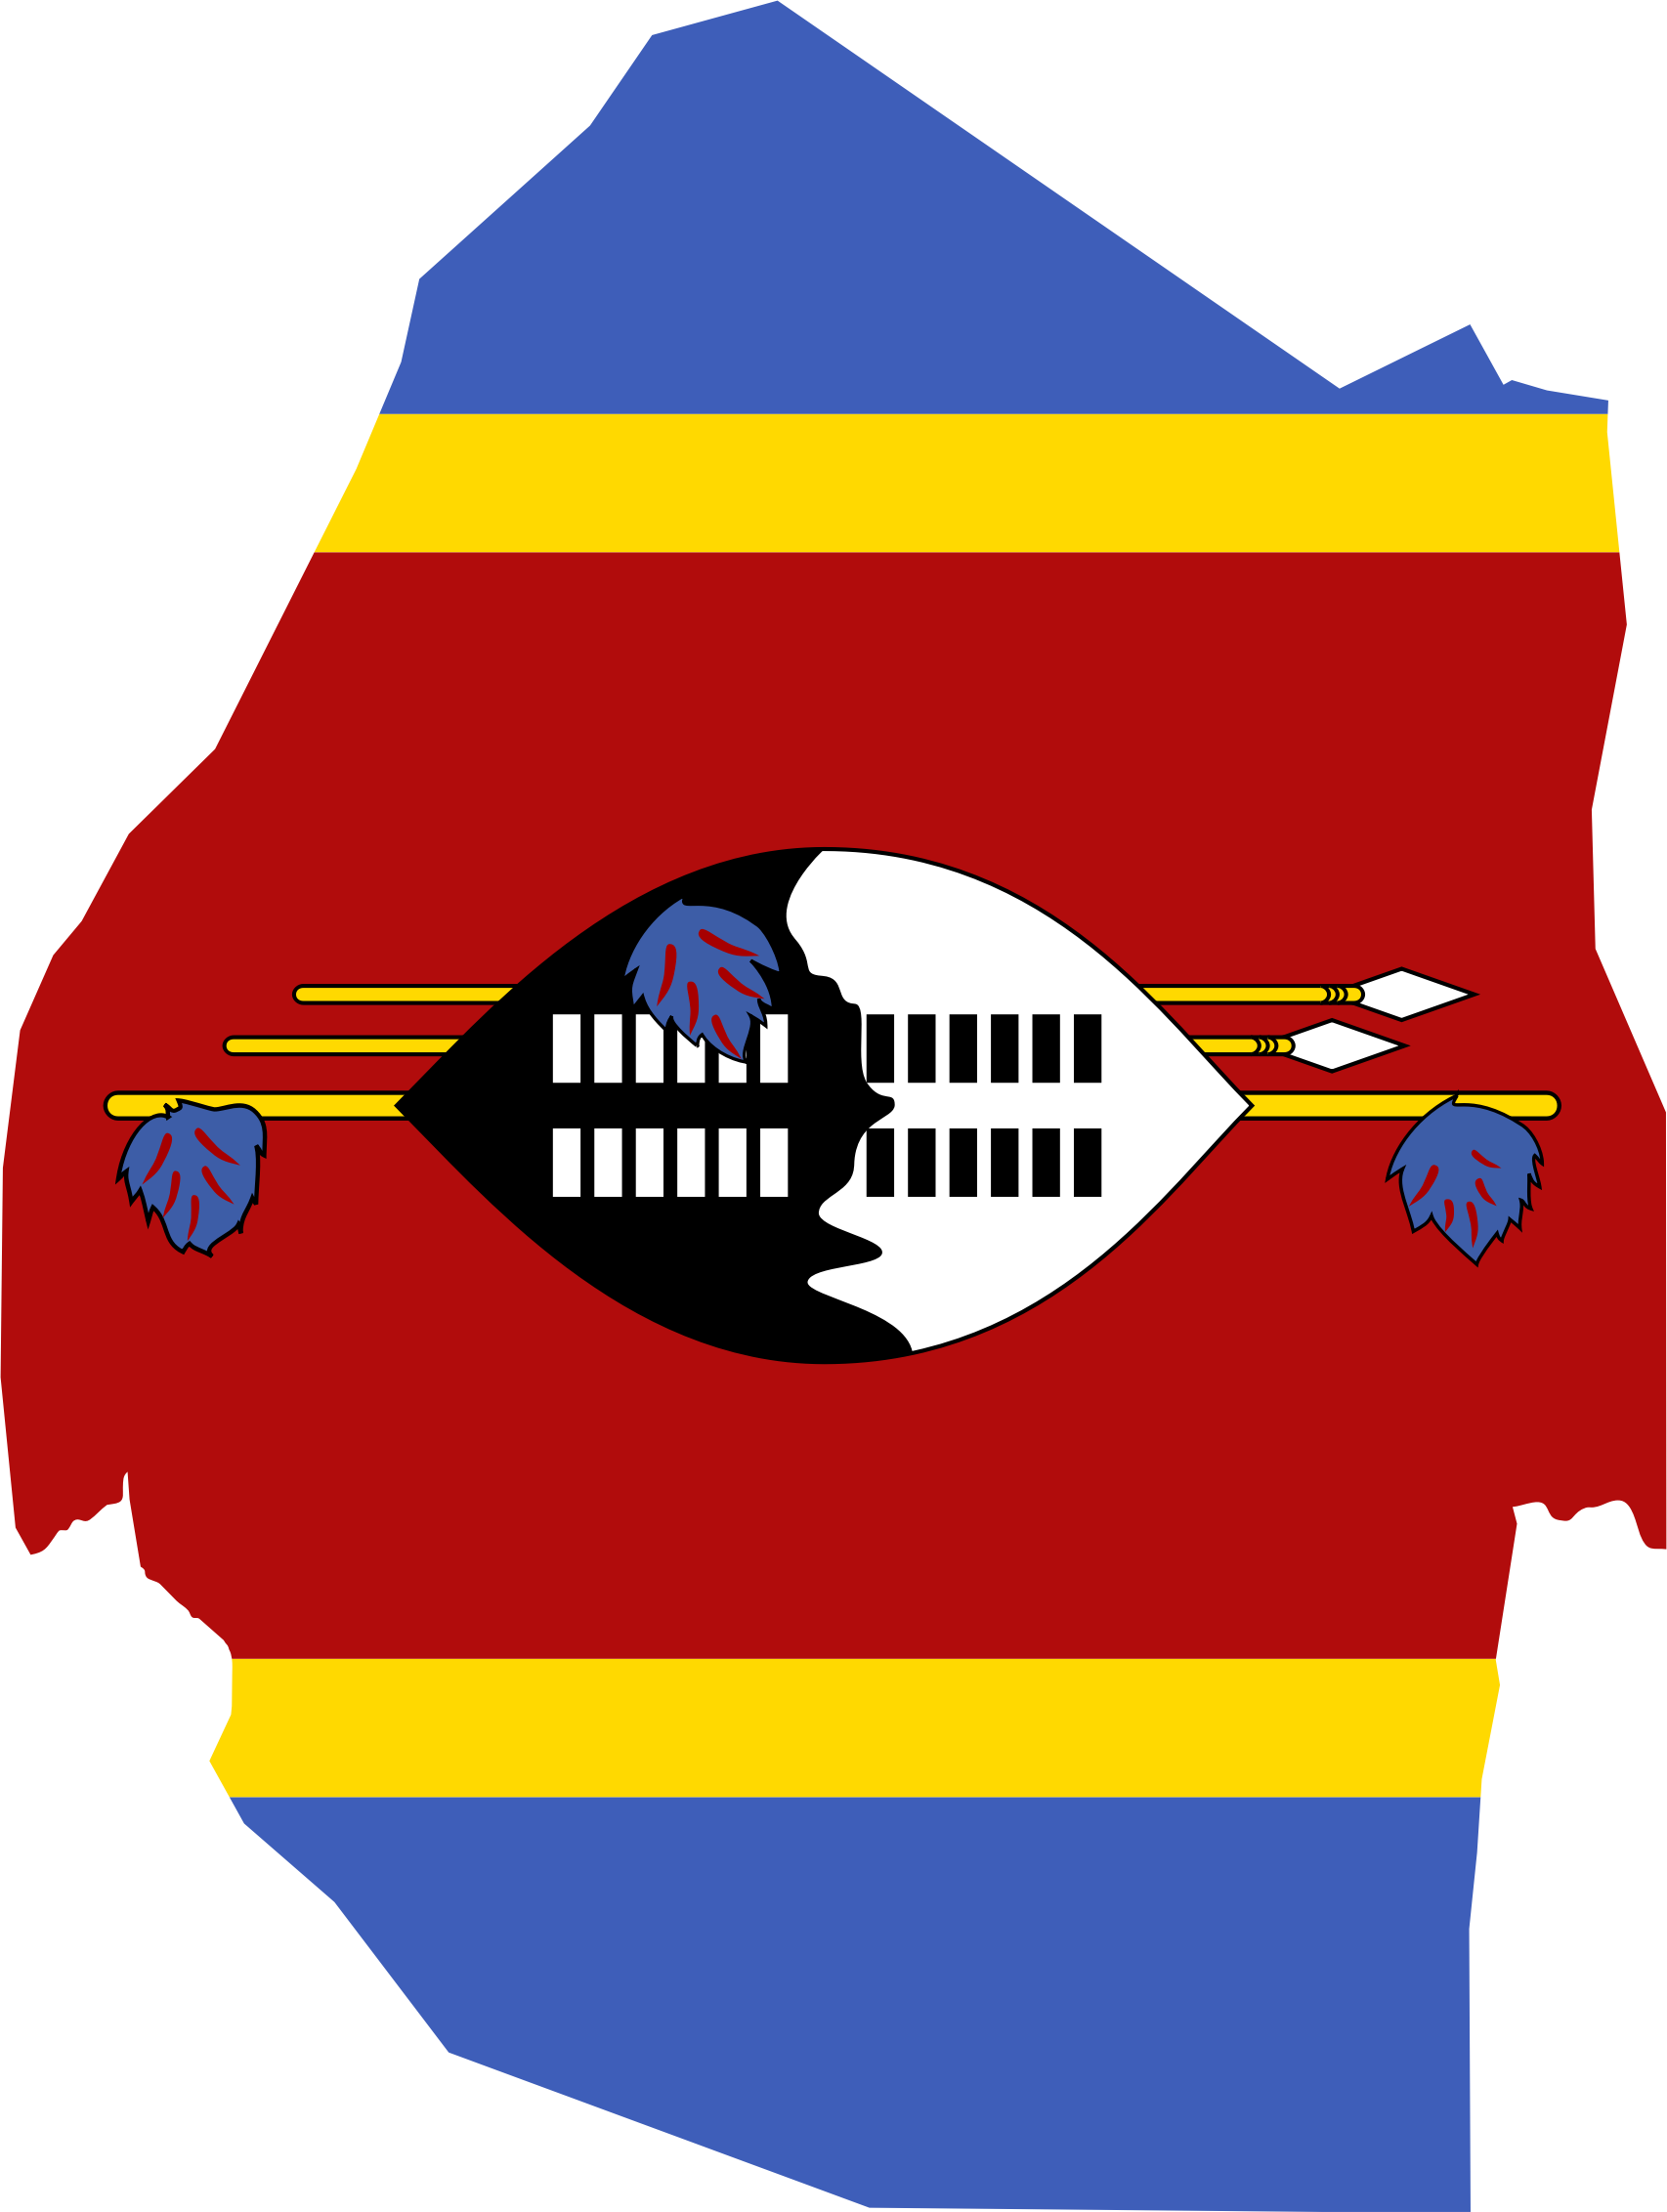 Clipart Swaziland Map Flag - Swaziland map